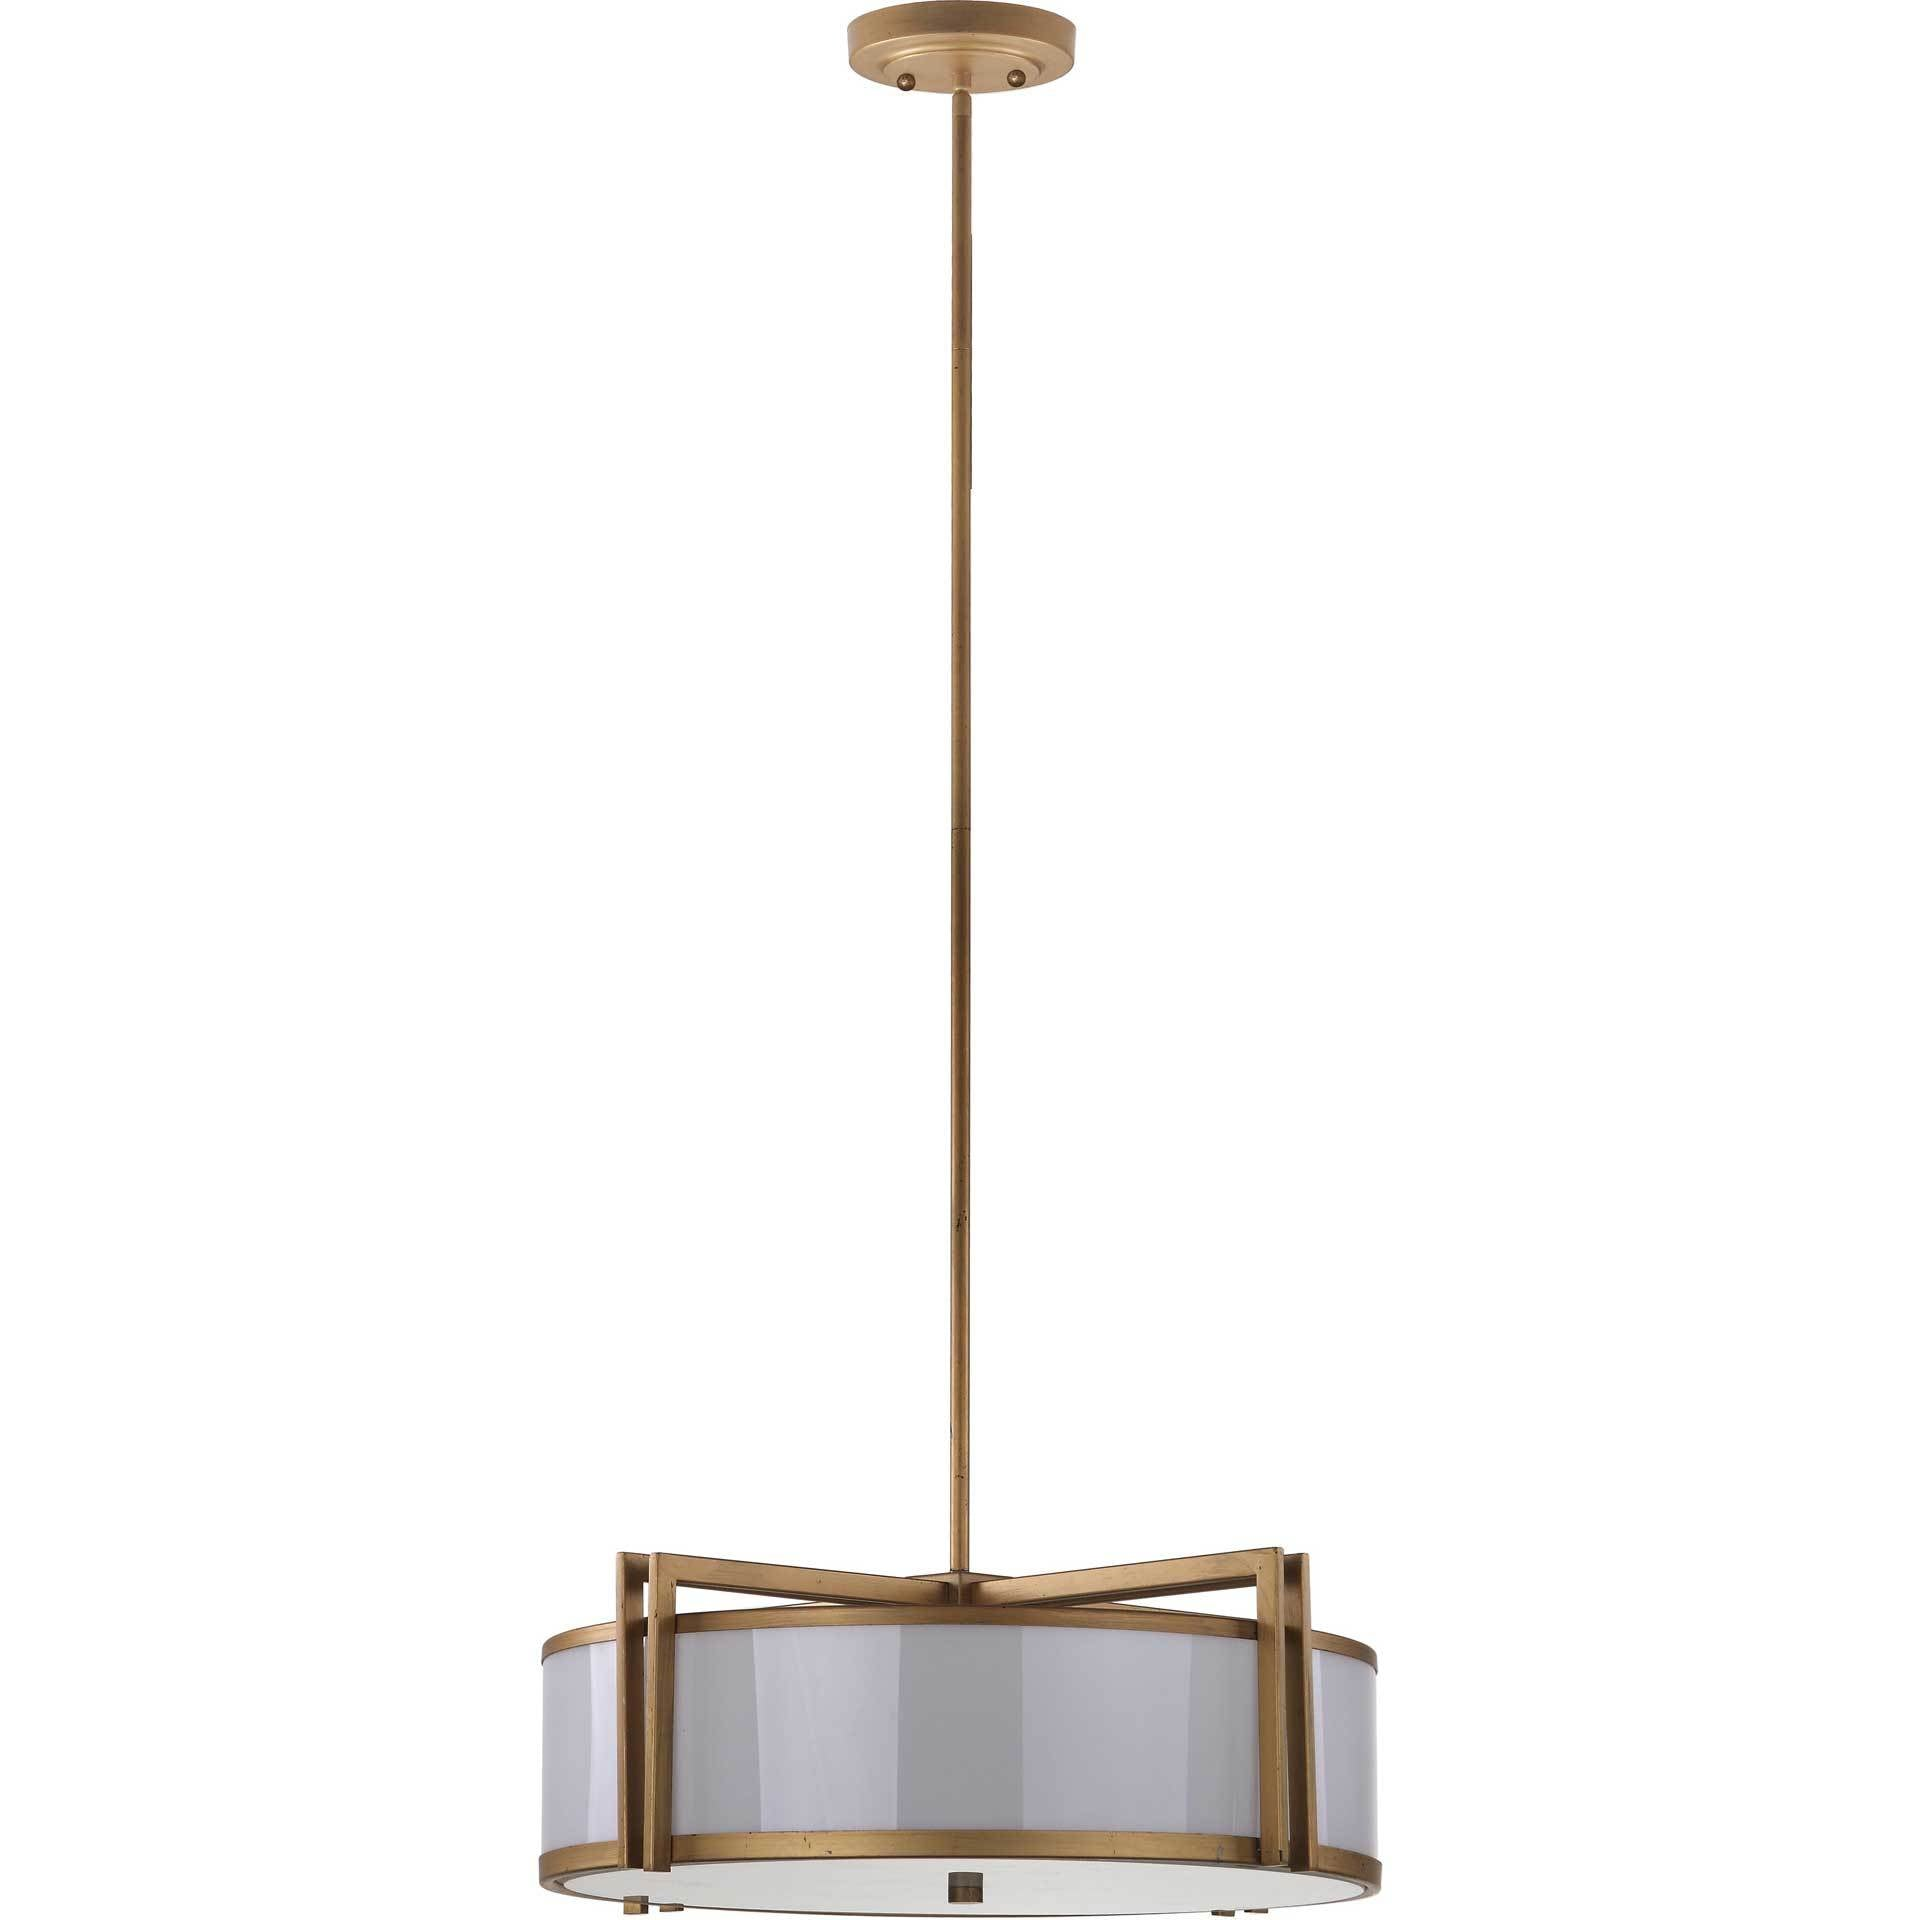 Oren Antique Gold Drum Adjustable Pendant Light